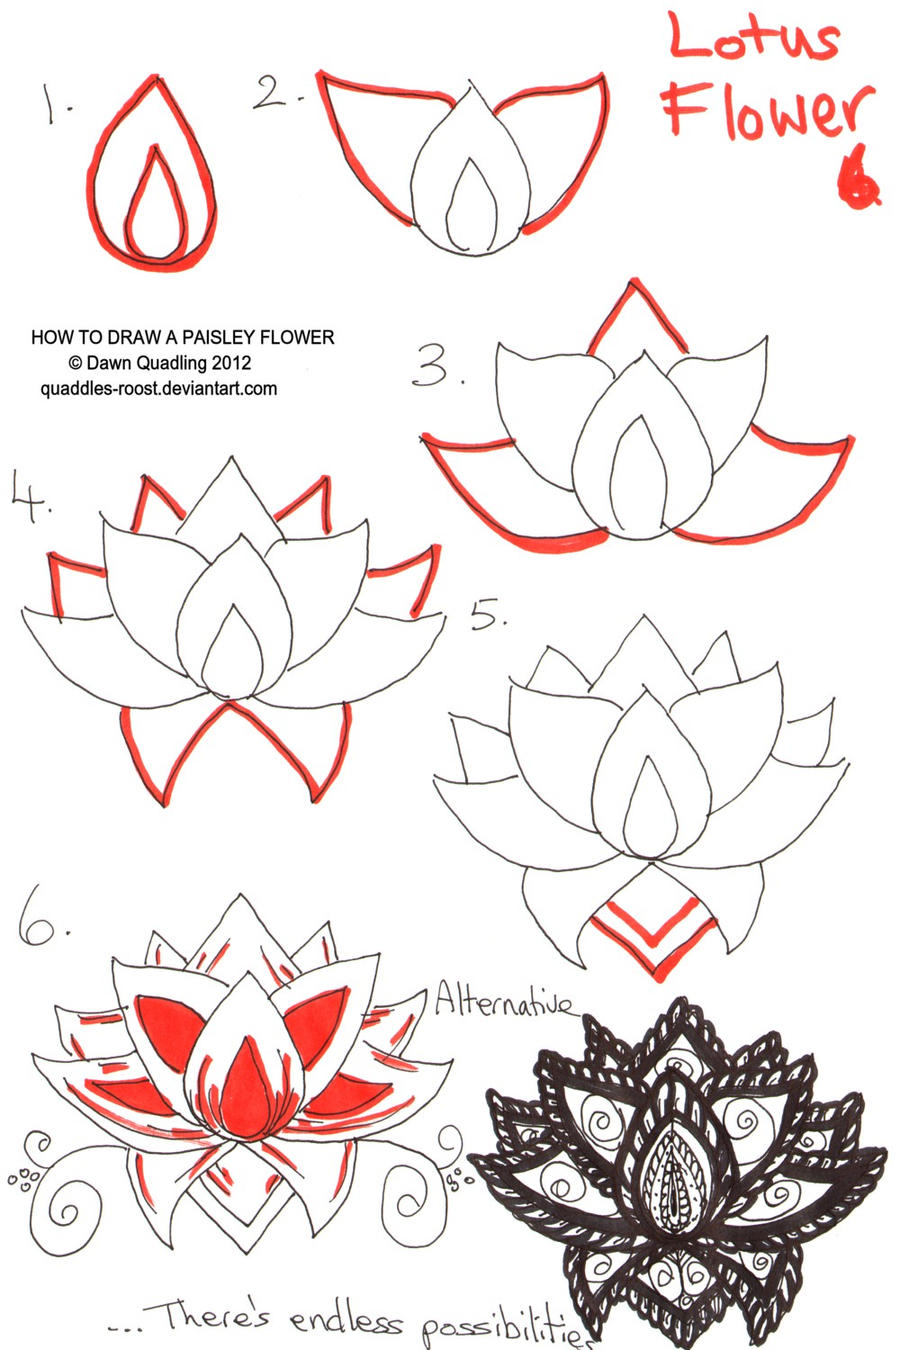 How To Draw Paisley Flower 06 By Quaddles Roost On DeviantArt